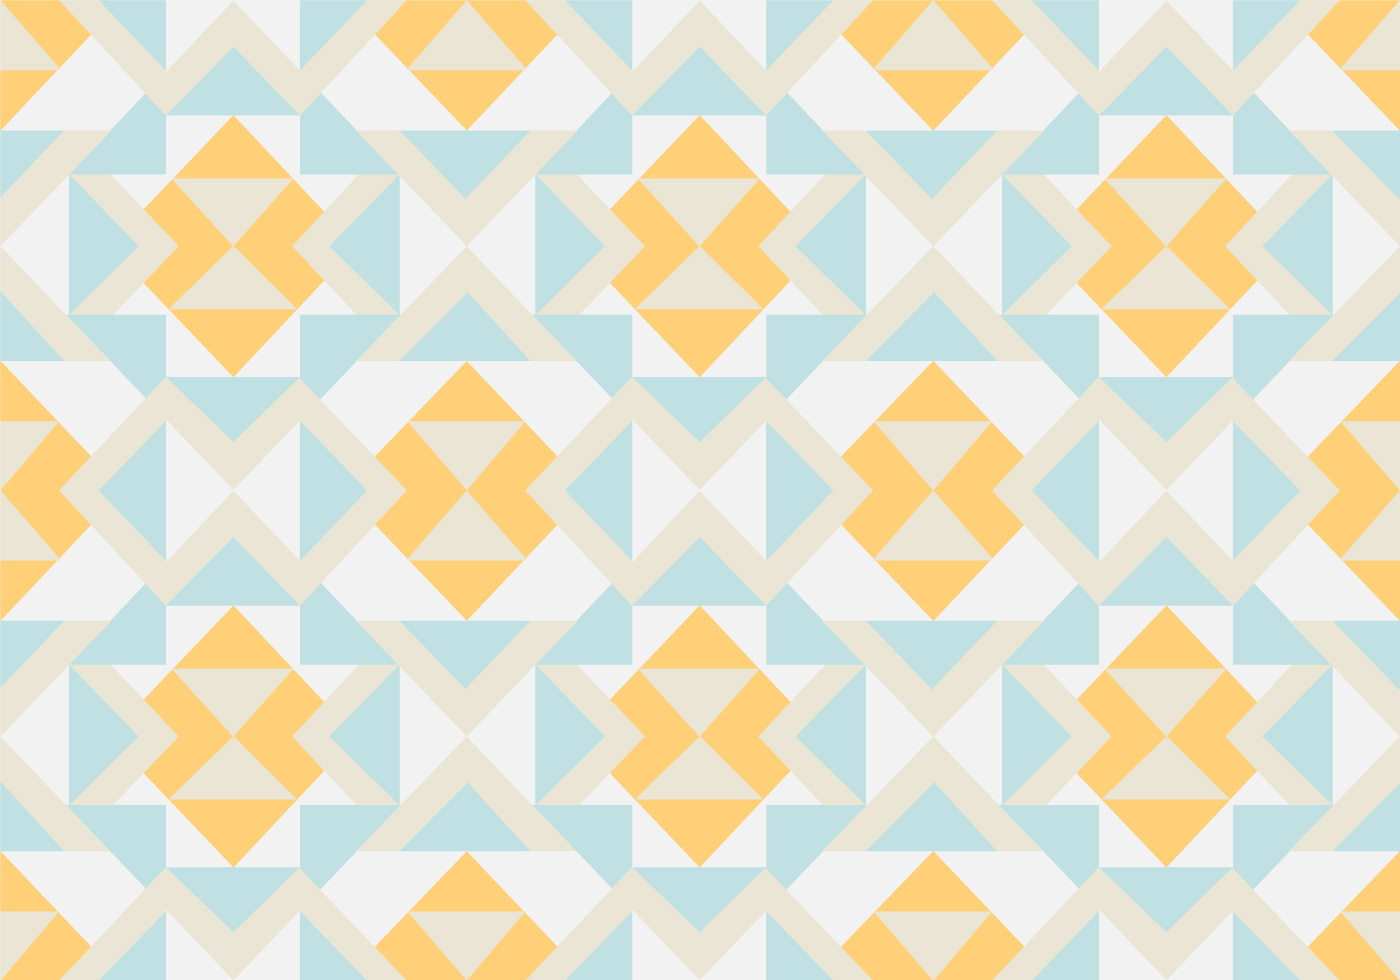 abstract pastel geometric pattern background download